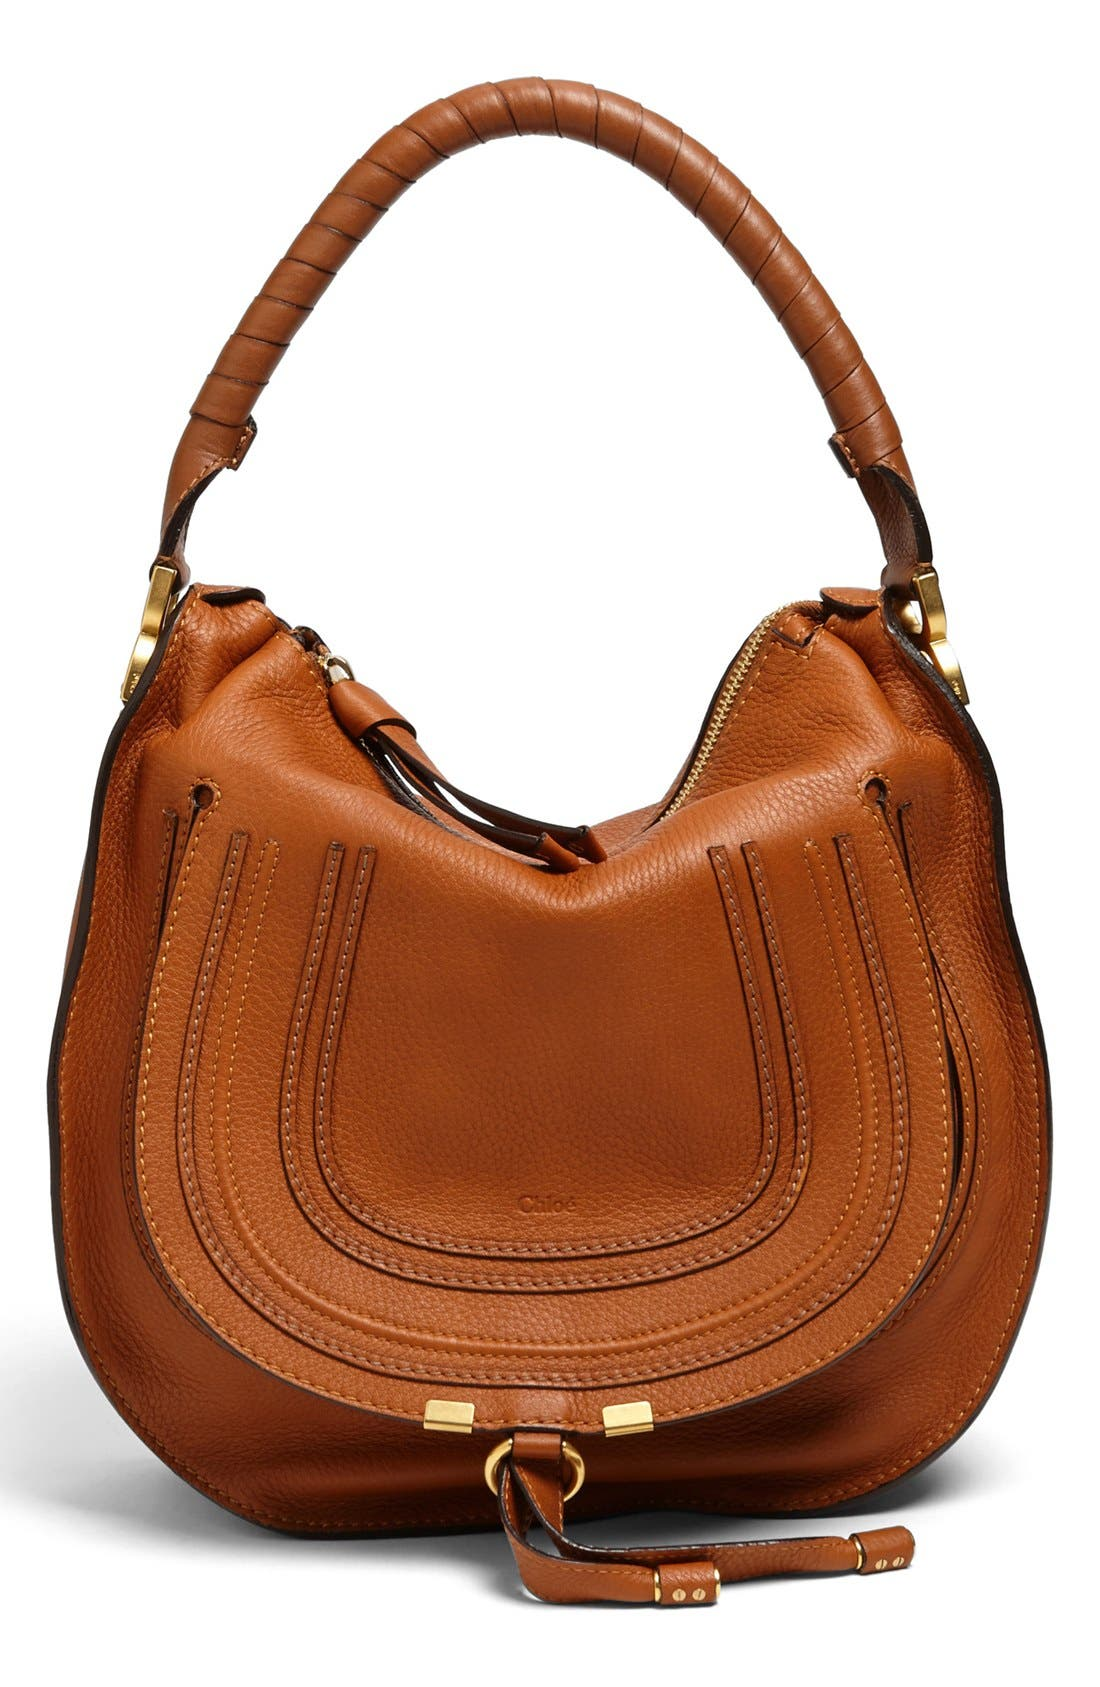 Alternate Image 1 Selected - Chloé 'Marcie - Medium' Leather Hobo